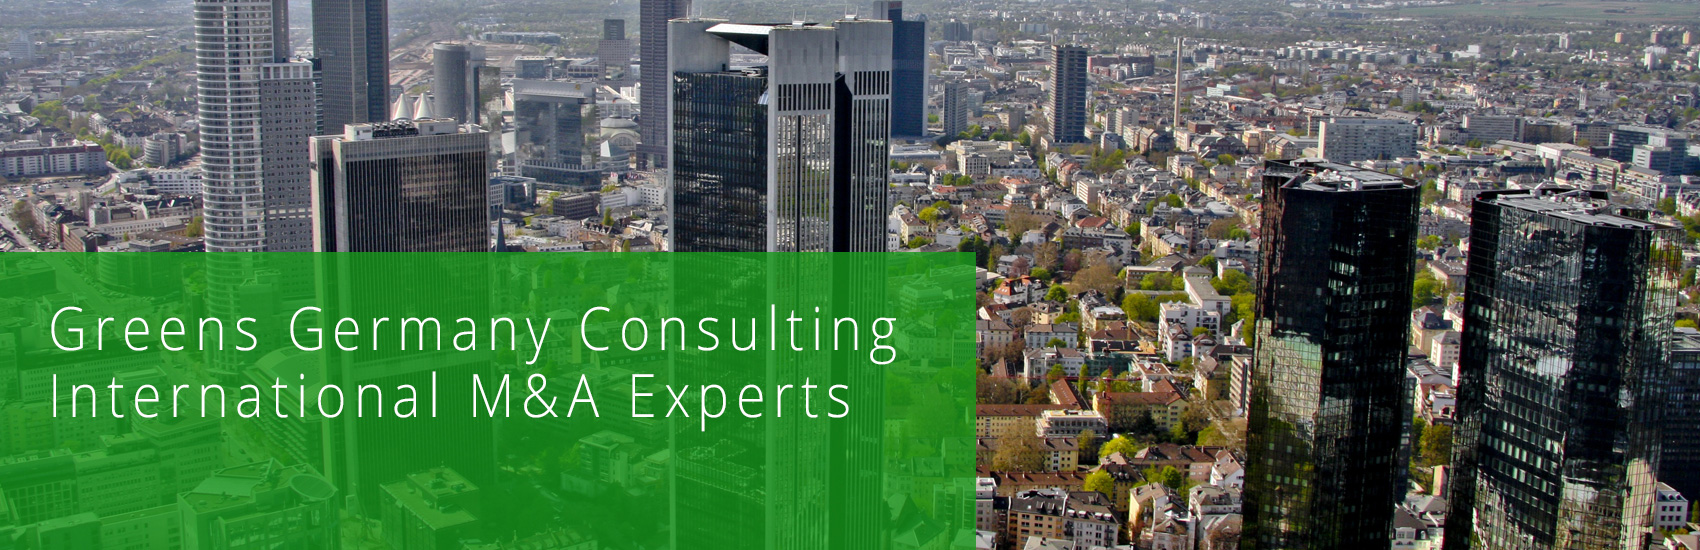 Greens Germany International M&A Experts